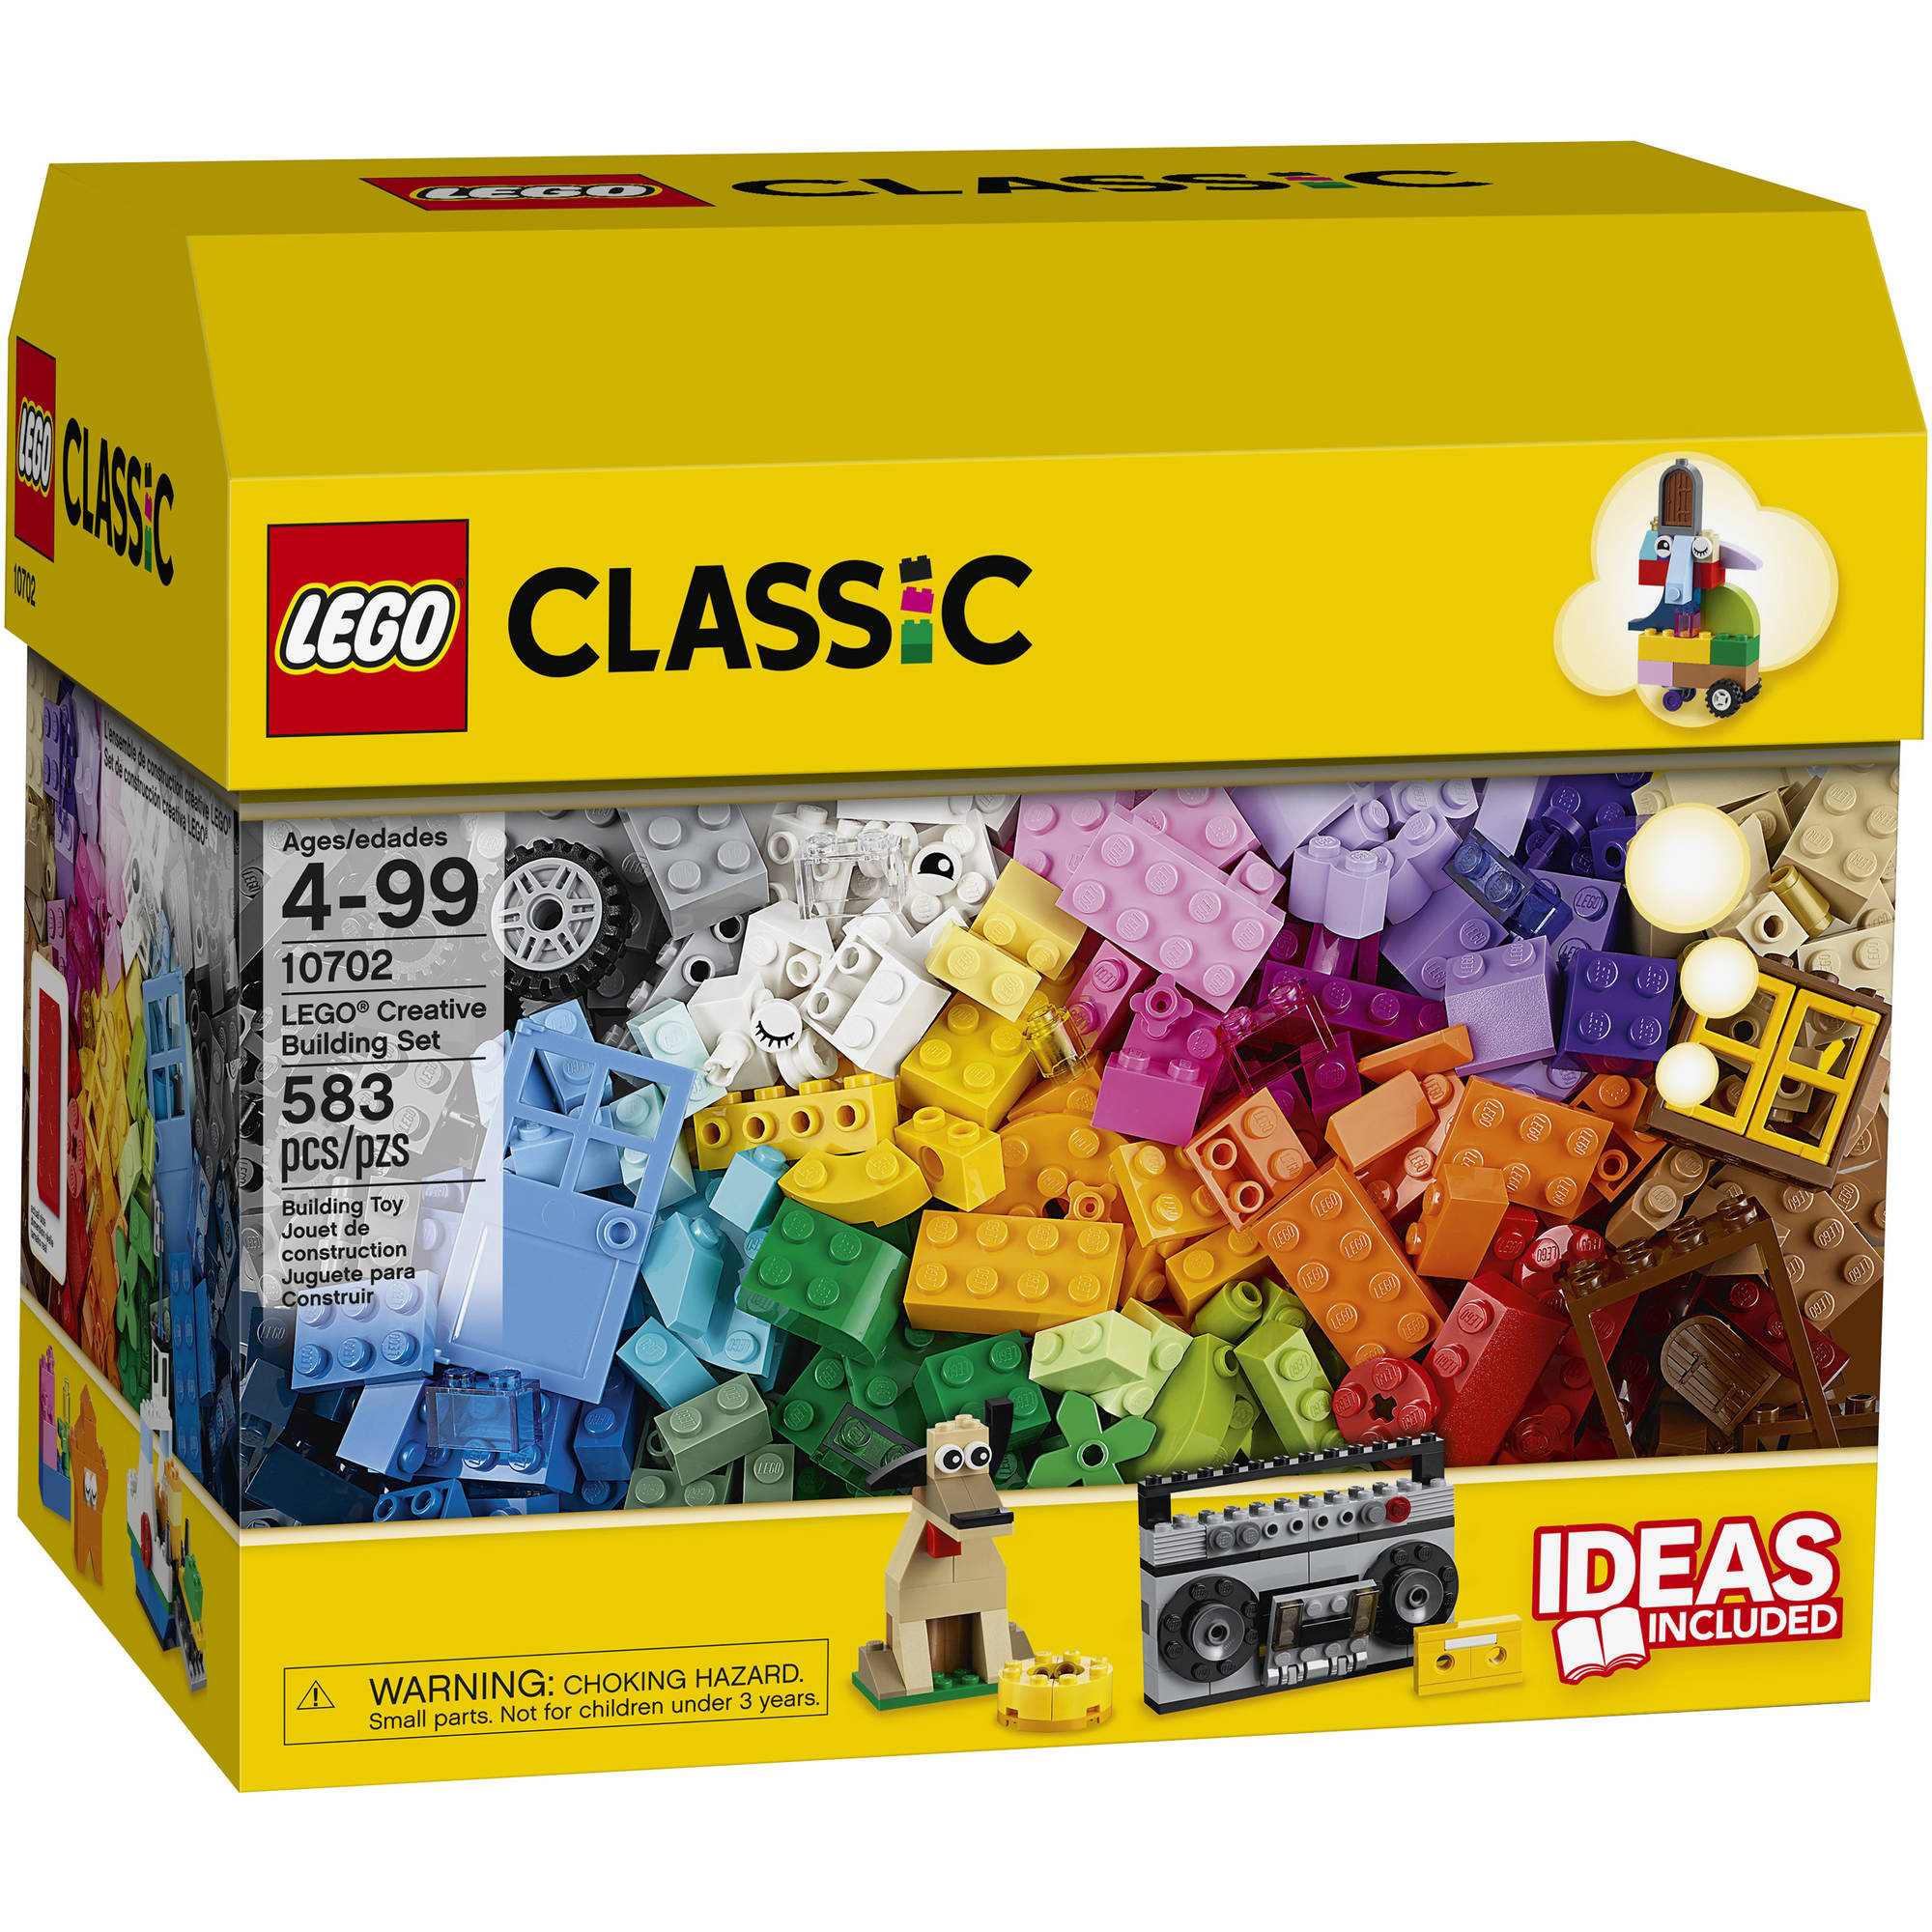 HOW MUCH DO LEGOS COST AT WALMART